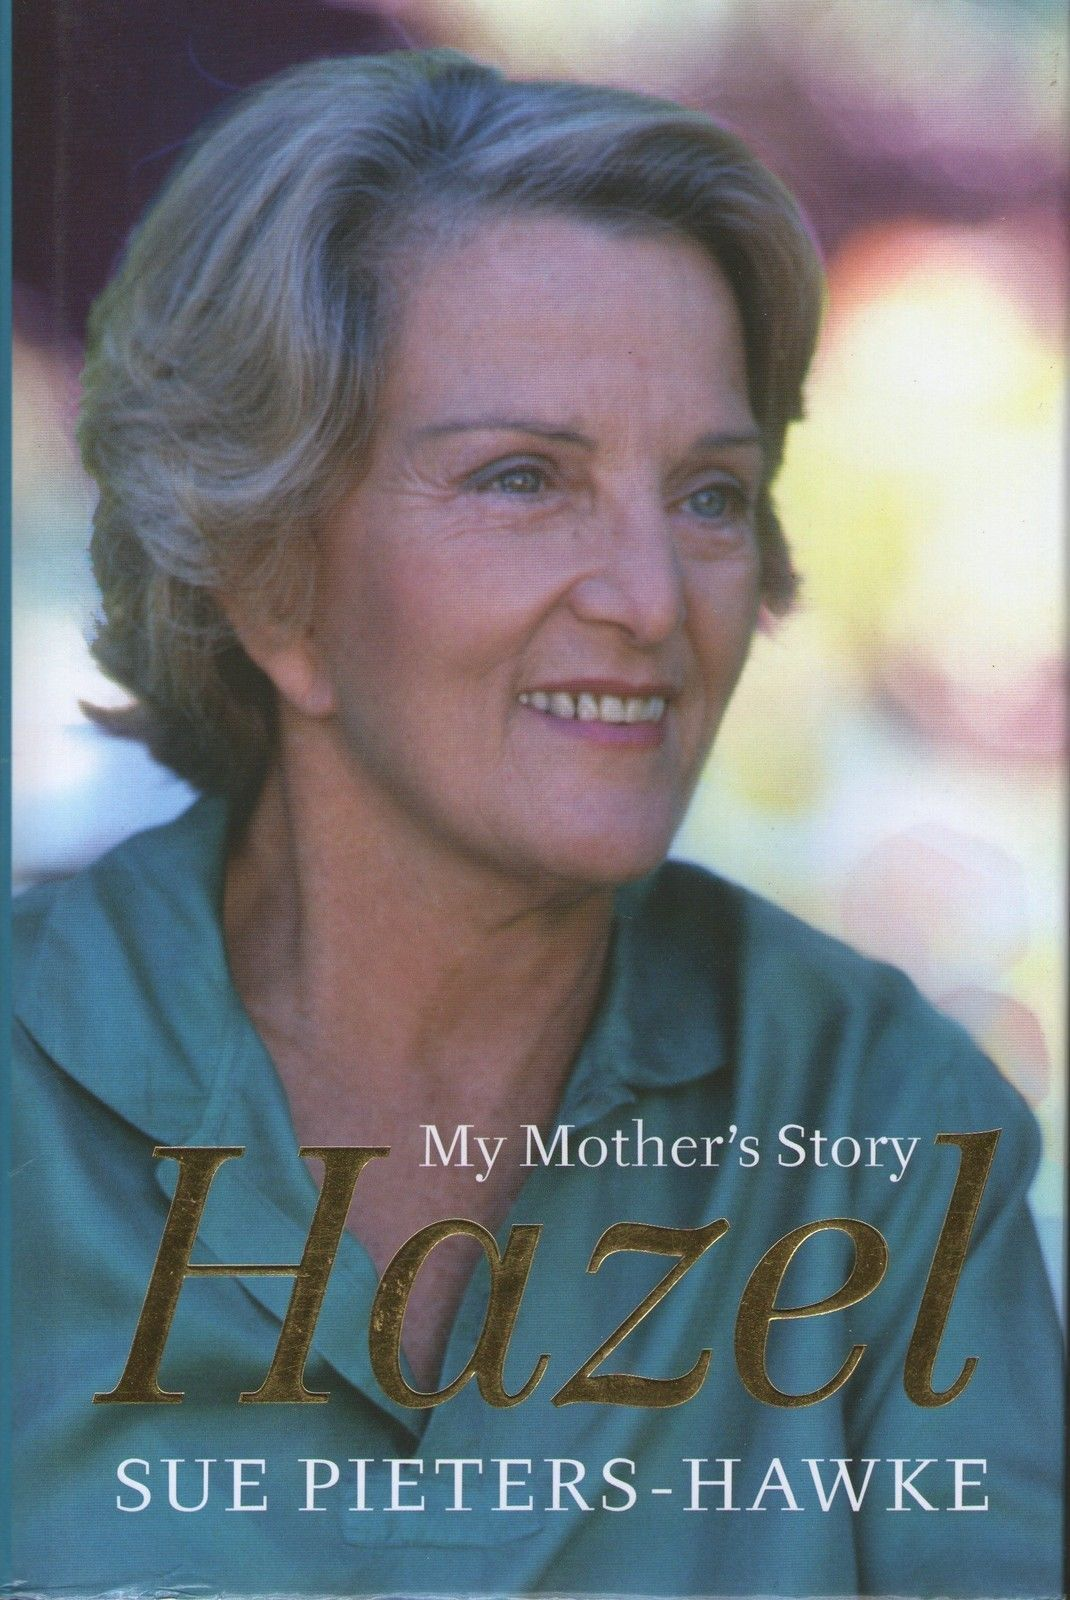 """I'm presently reading the poignant and inspiration biography of Hazel Hawke, """"Hazel - My Mother's Story"""", written by Sue Pieters-Hawke. I came across this wonderfully Hazelesque quote from the book this morning: 'We are responsible for our own decision, successes and disappointments . . . there is no room for """"if only"""" or """"being the victim"""".'  #australia #auspol #hazelhawke #suepietershawke"""